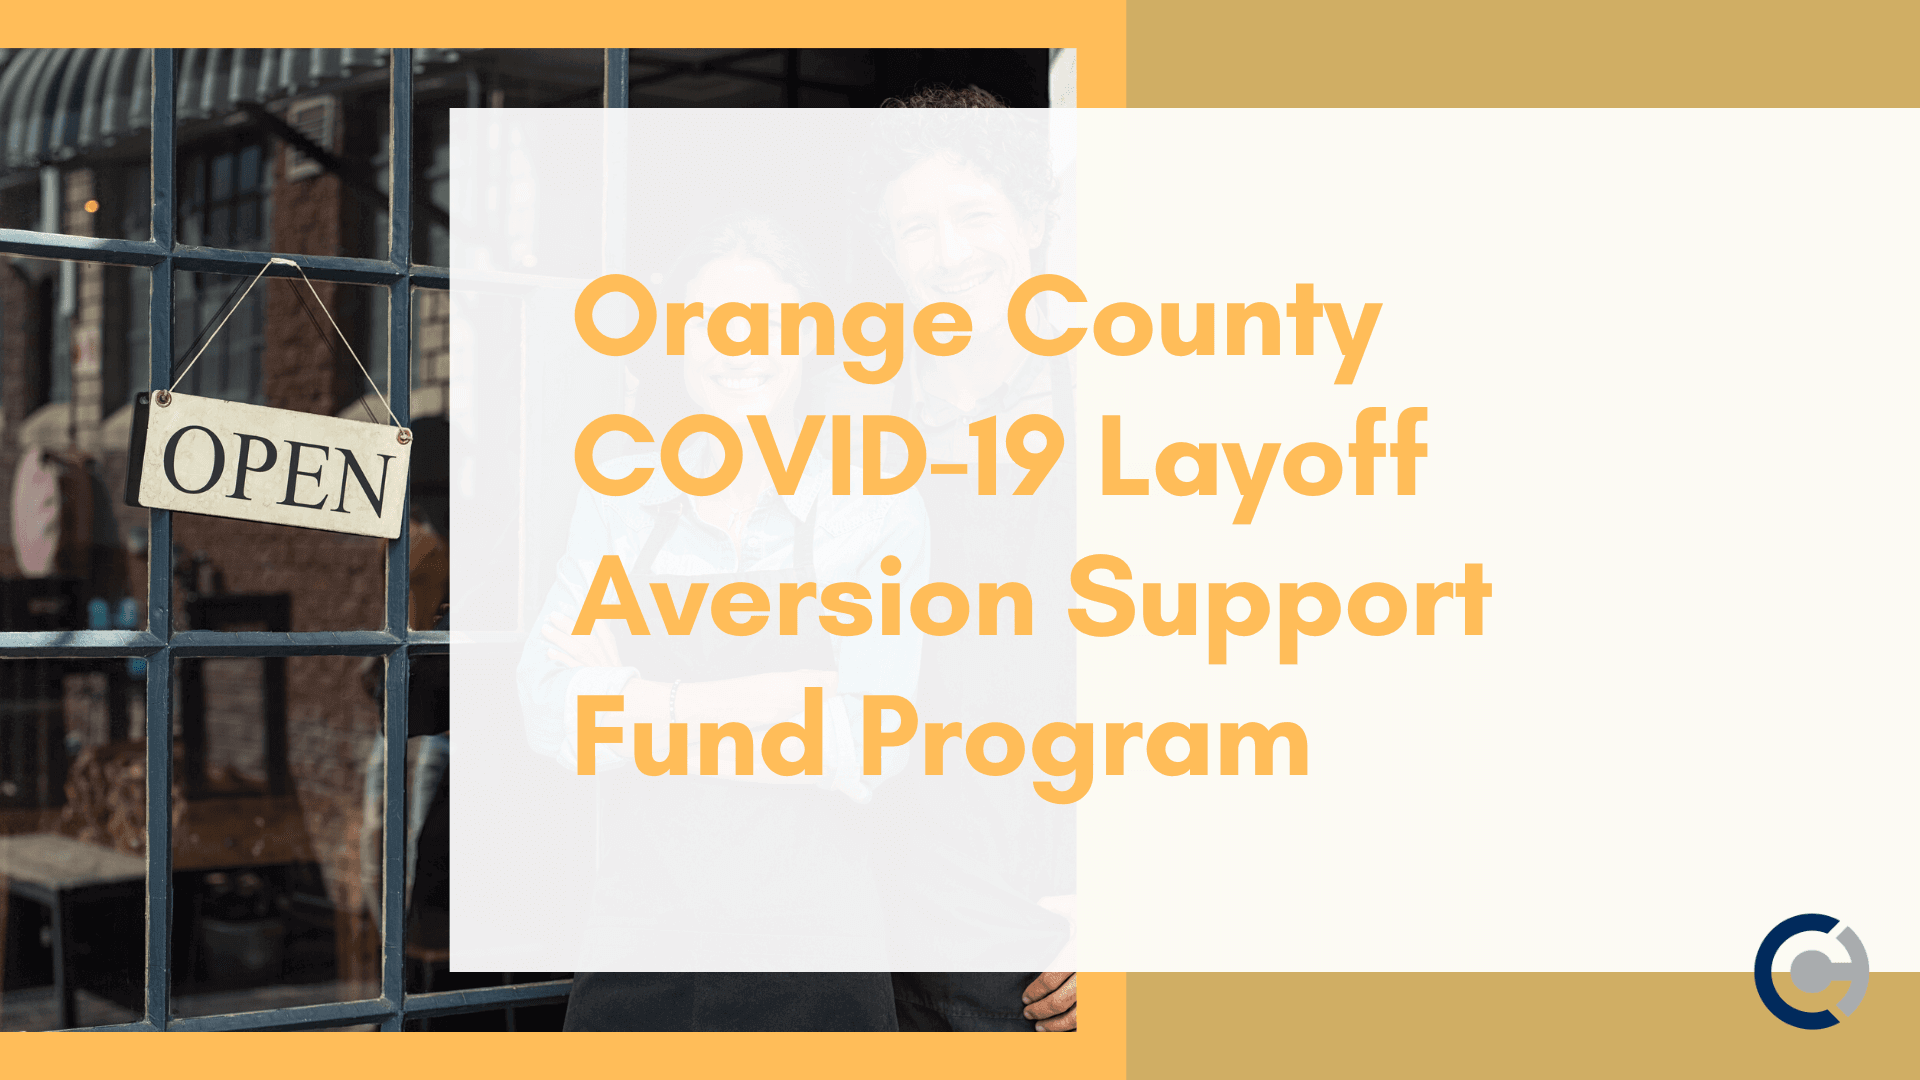 Orange County COVID-19 Layoff Aversion Support Fund Program - CAPATA